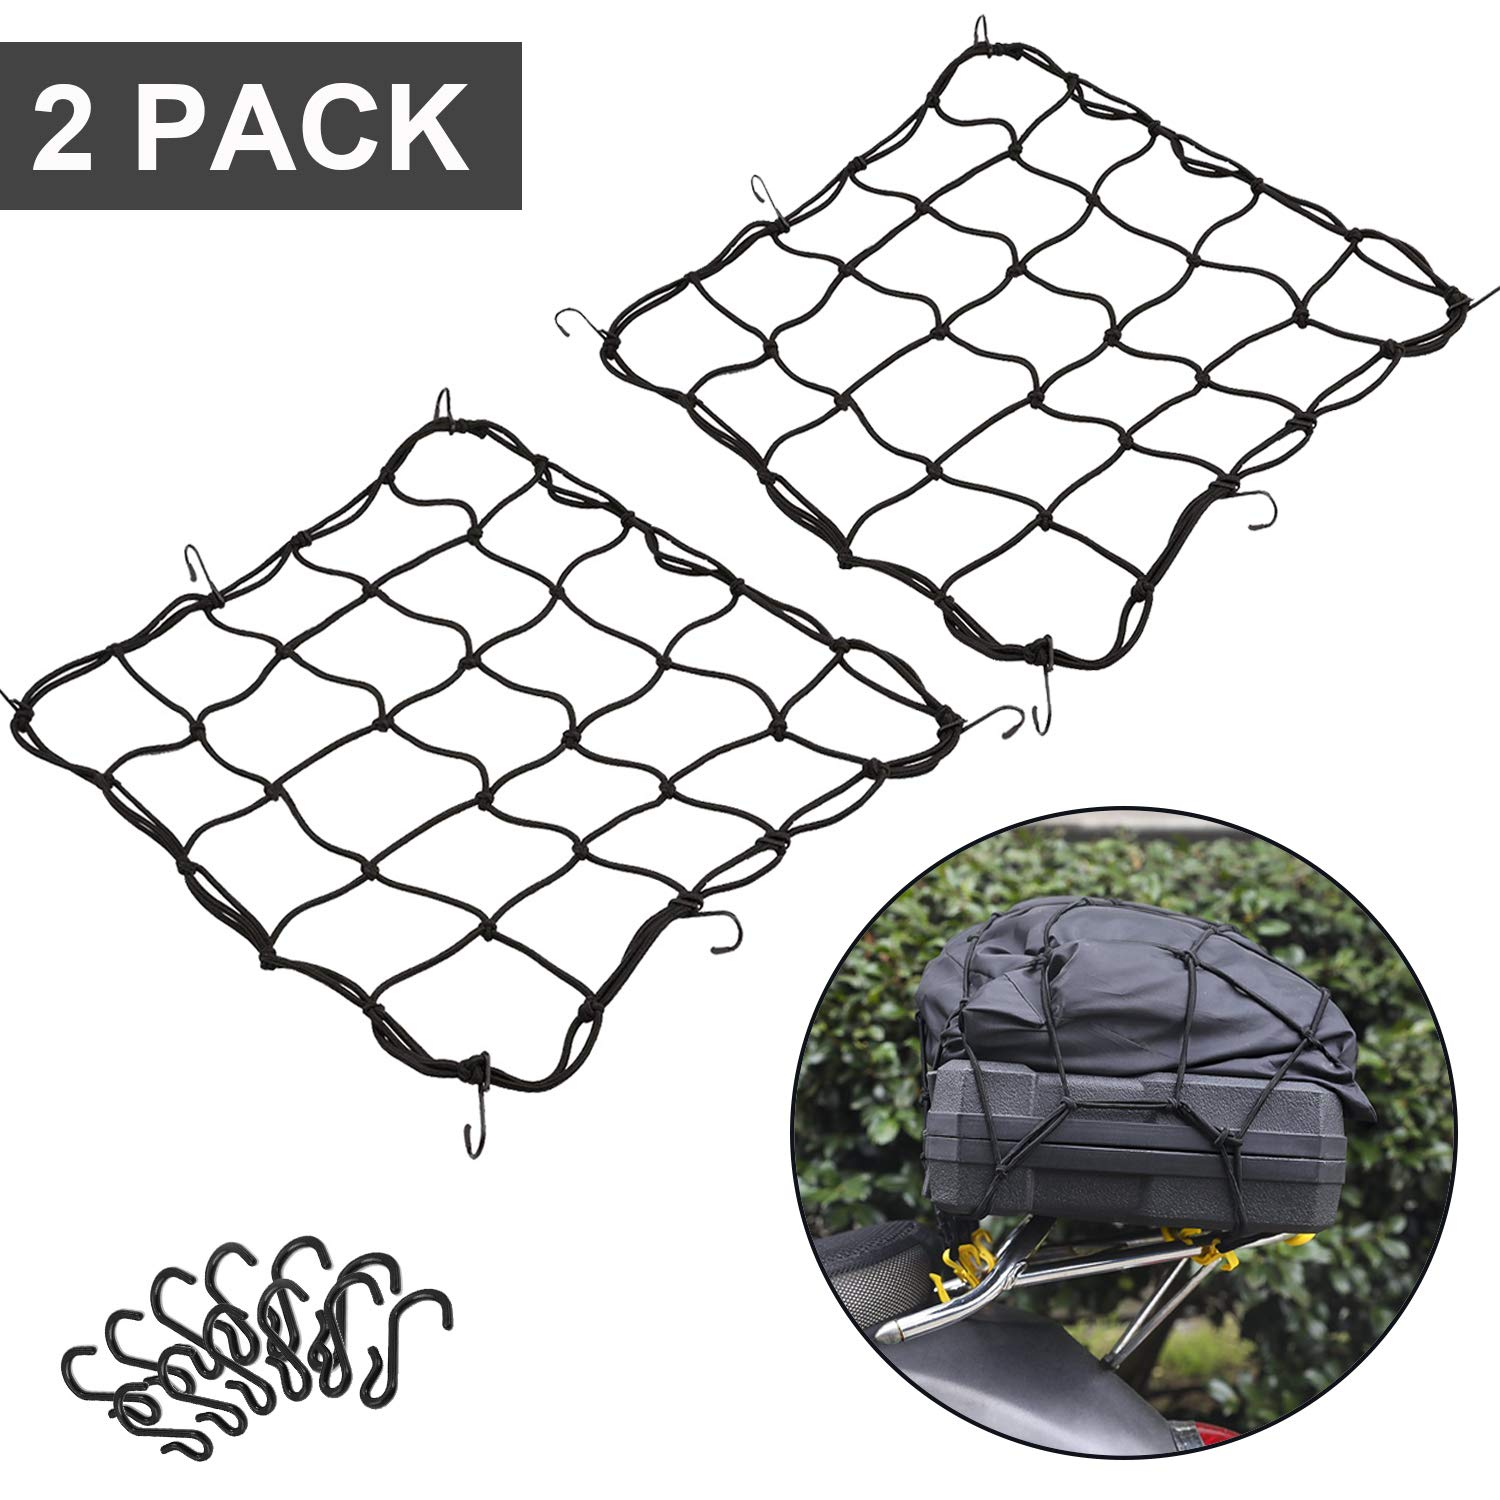 2 Pack of 15.7x15.7 Bungee Cargo Net Stretches to 30x30 Elastic Motorcycle Luggage Bungee Netting with 12 Metal Hooks Stretchable Bungee Cord Mesh Load Net Bike Paddle board Quad Canoe Moped ATV